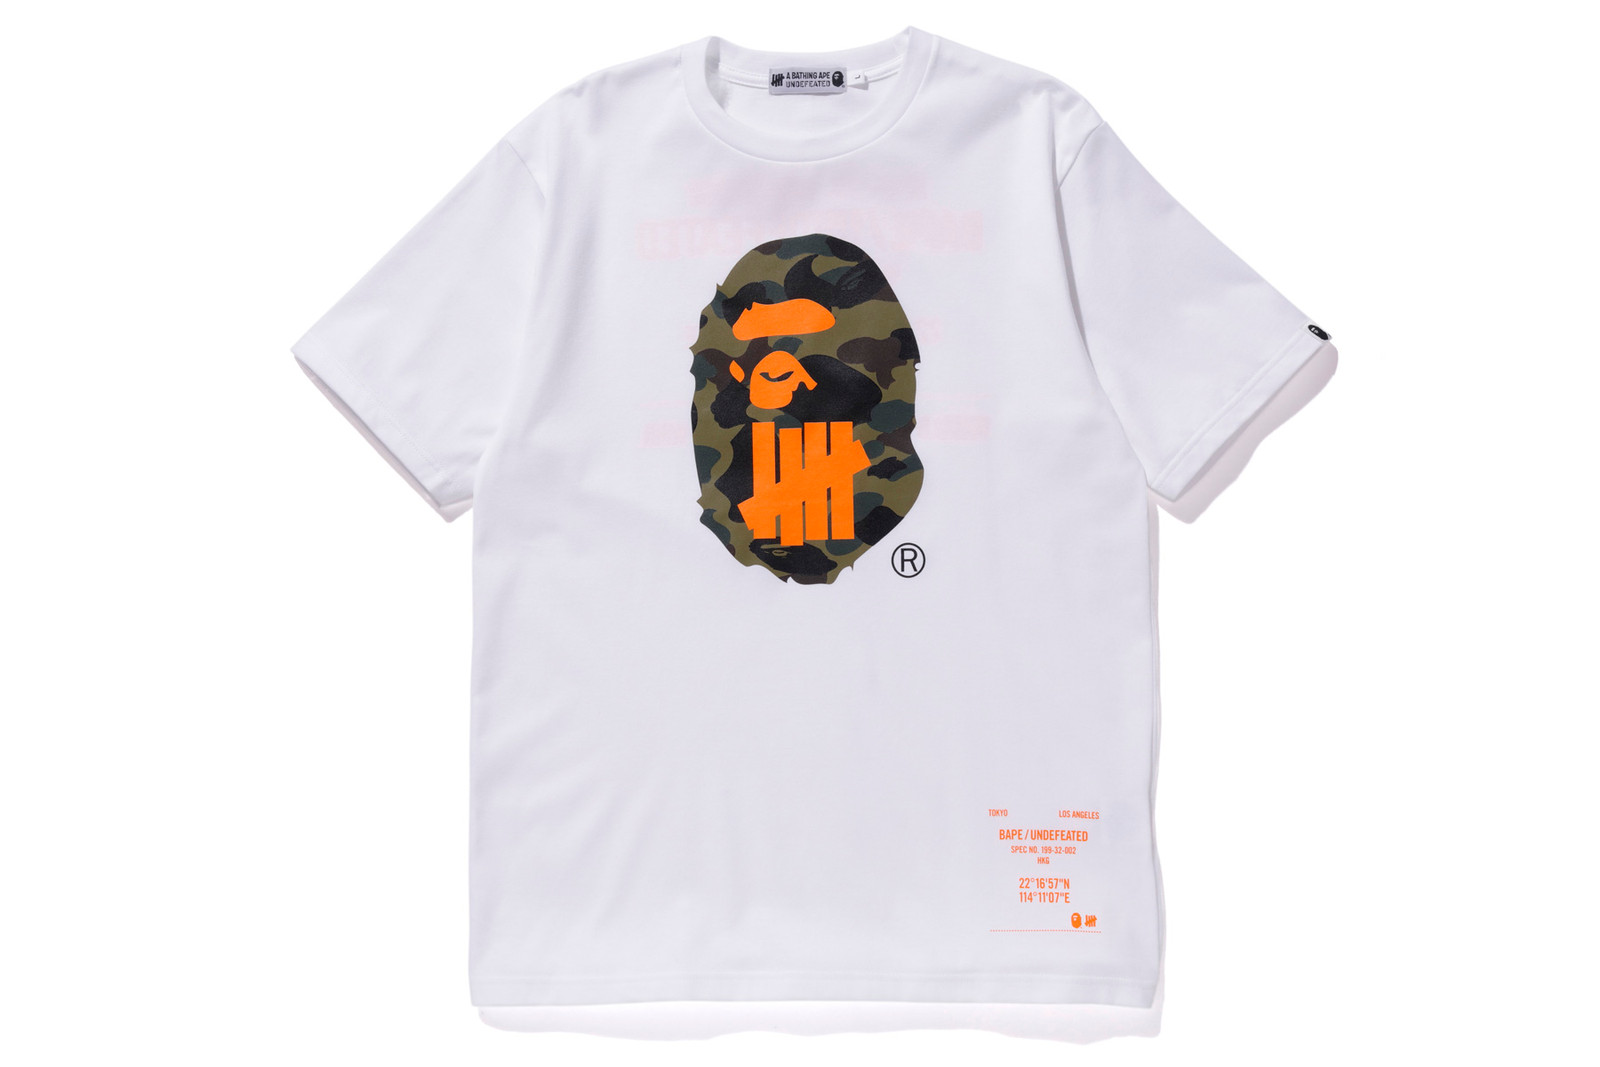 Spring/Summer 2018 Week 22 Top Drops weekly drops stussy undefeated bape a bathing ape nigo poggy Pleasures Levi's The North Face Warren Lotas Bait Advisory Board Crystals